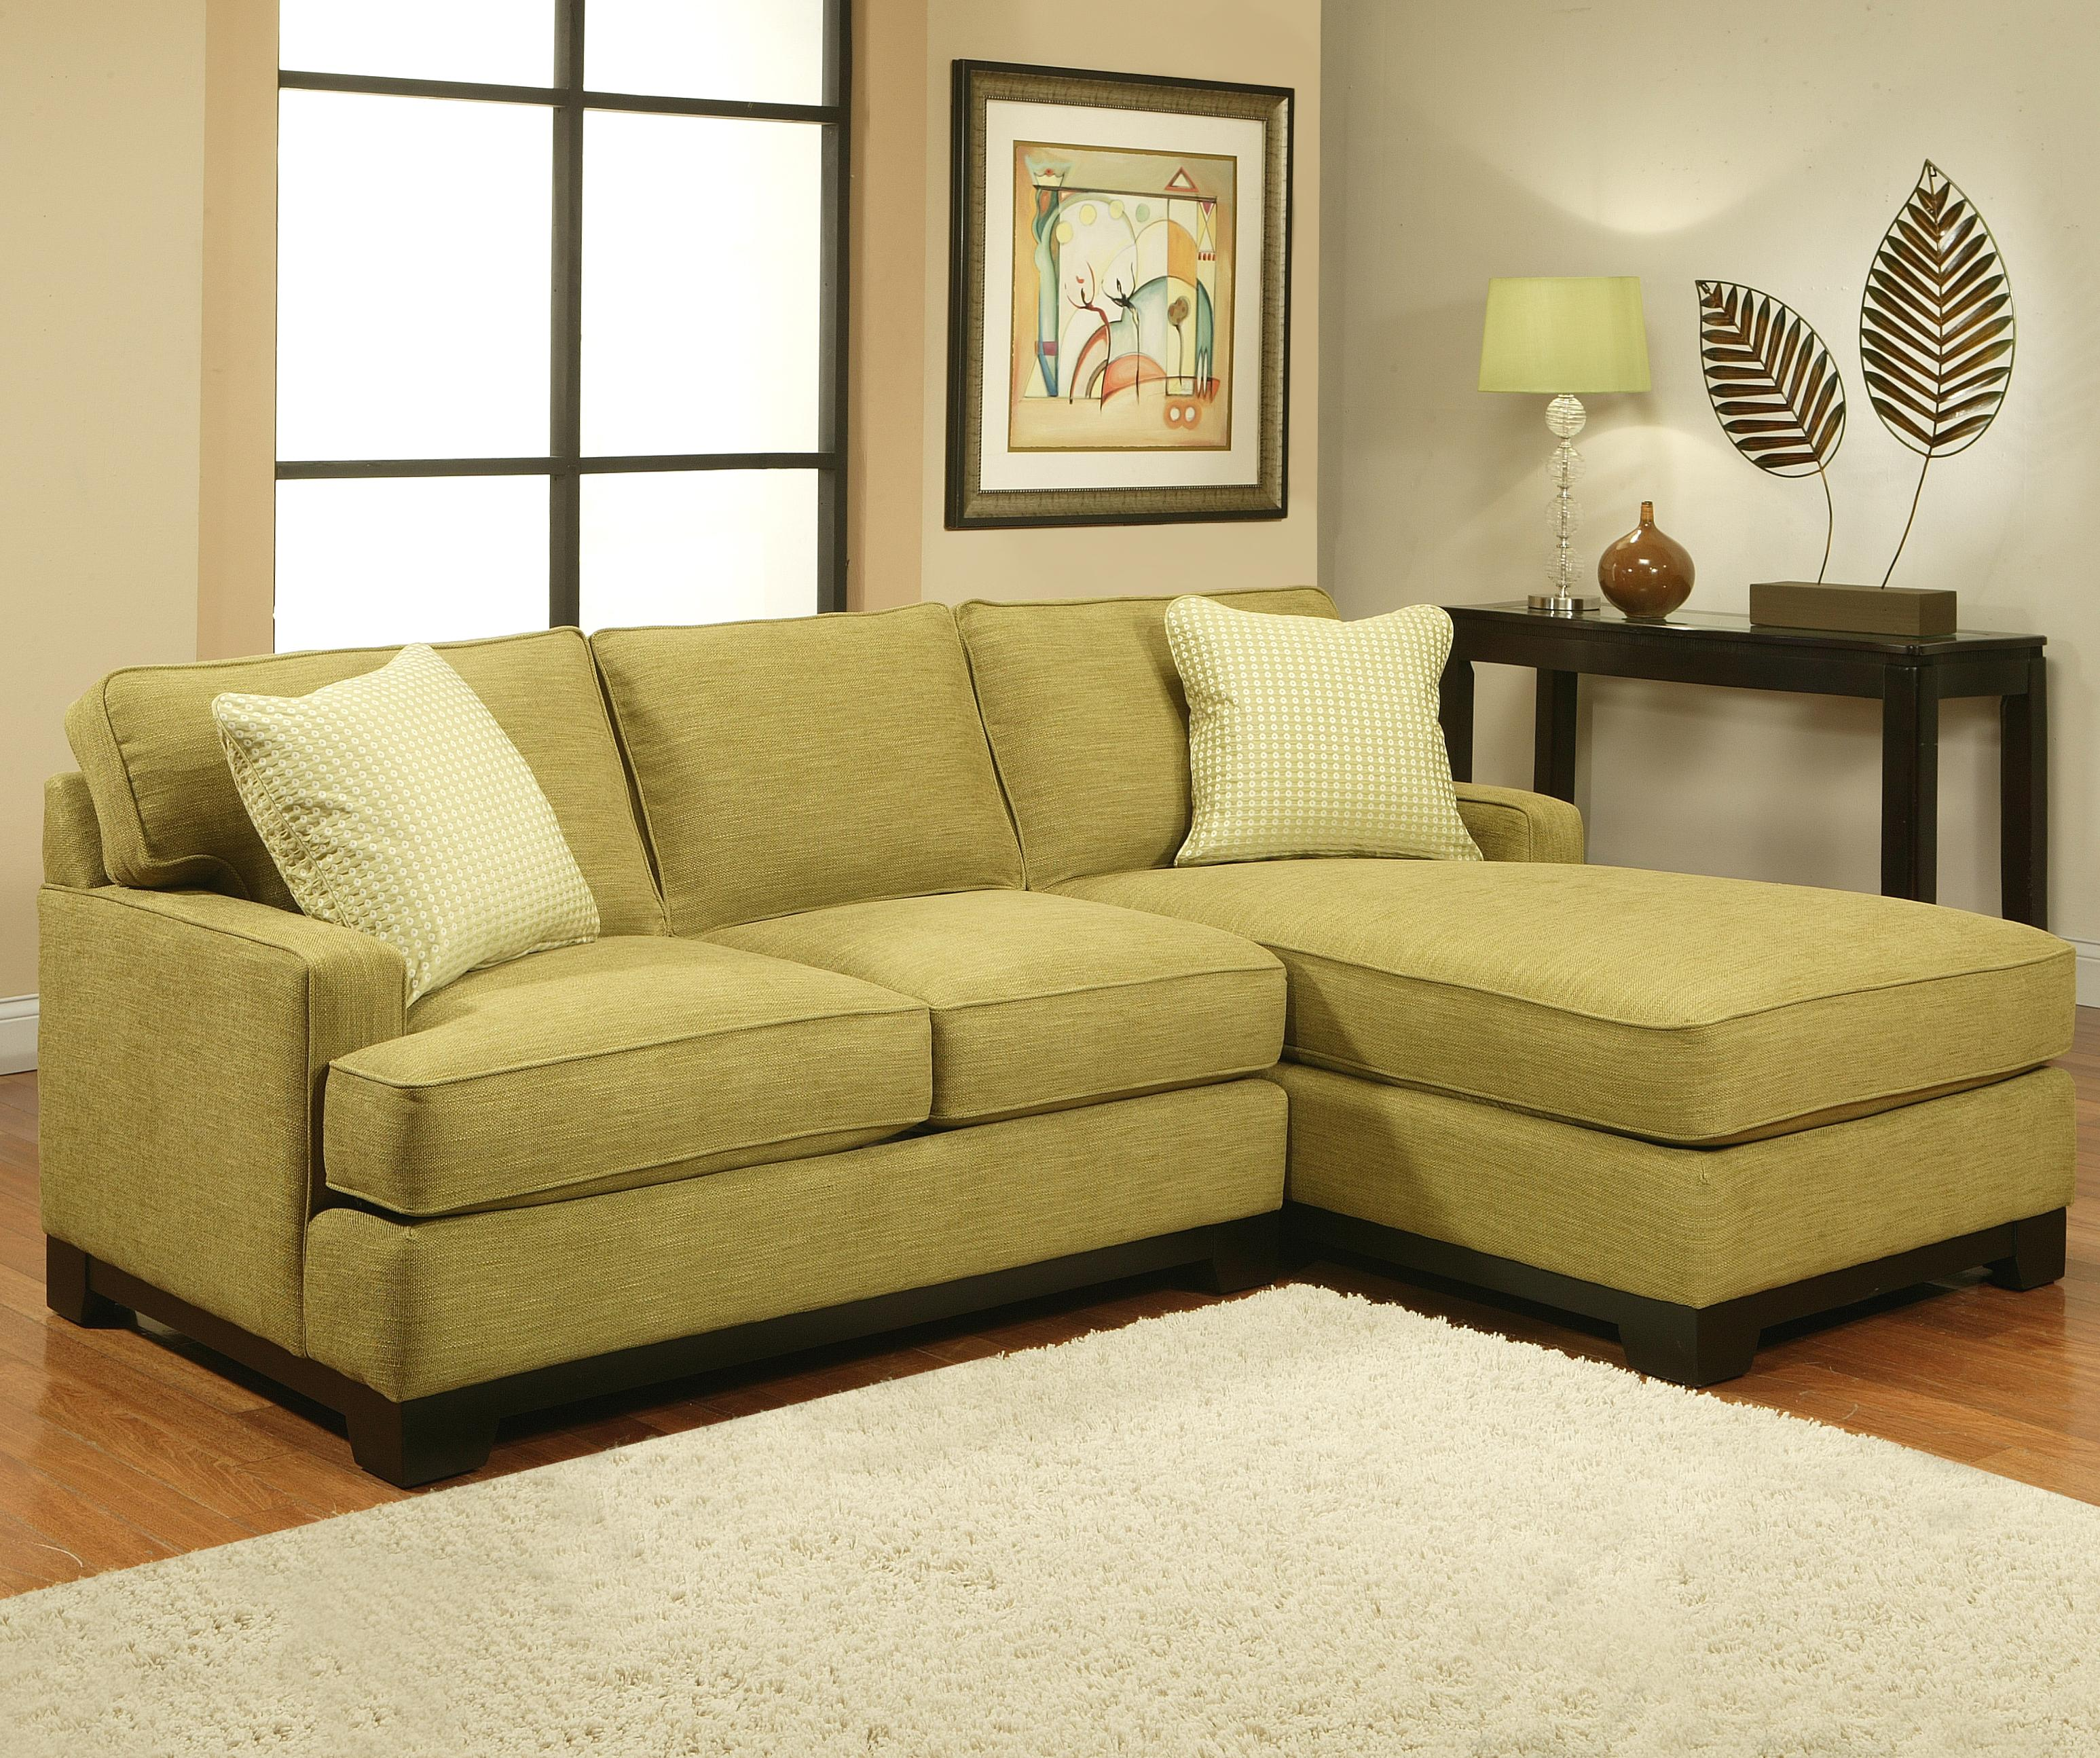 Jonathan Louis Choices Kronos Contemporary Sectional Sofa With Track Arms John V Schultz